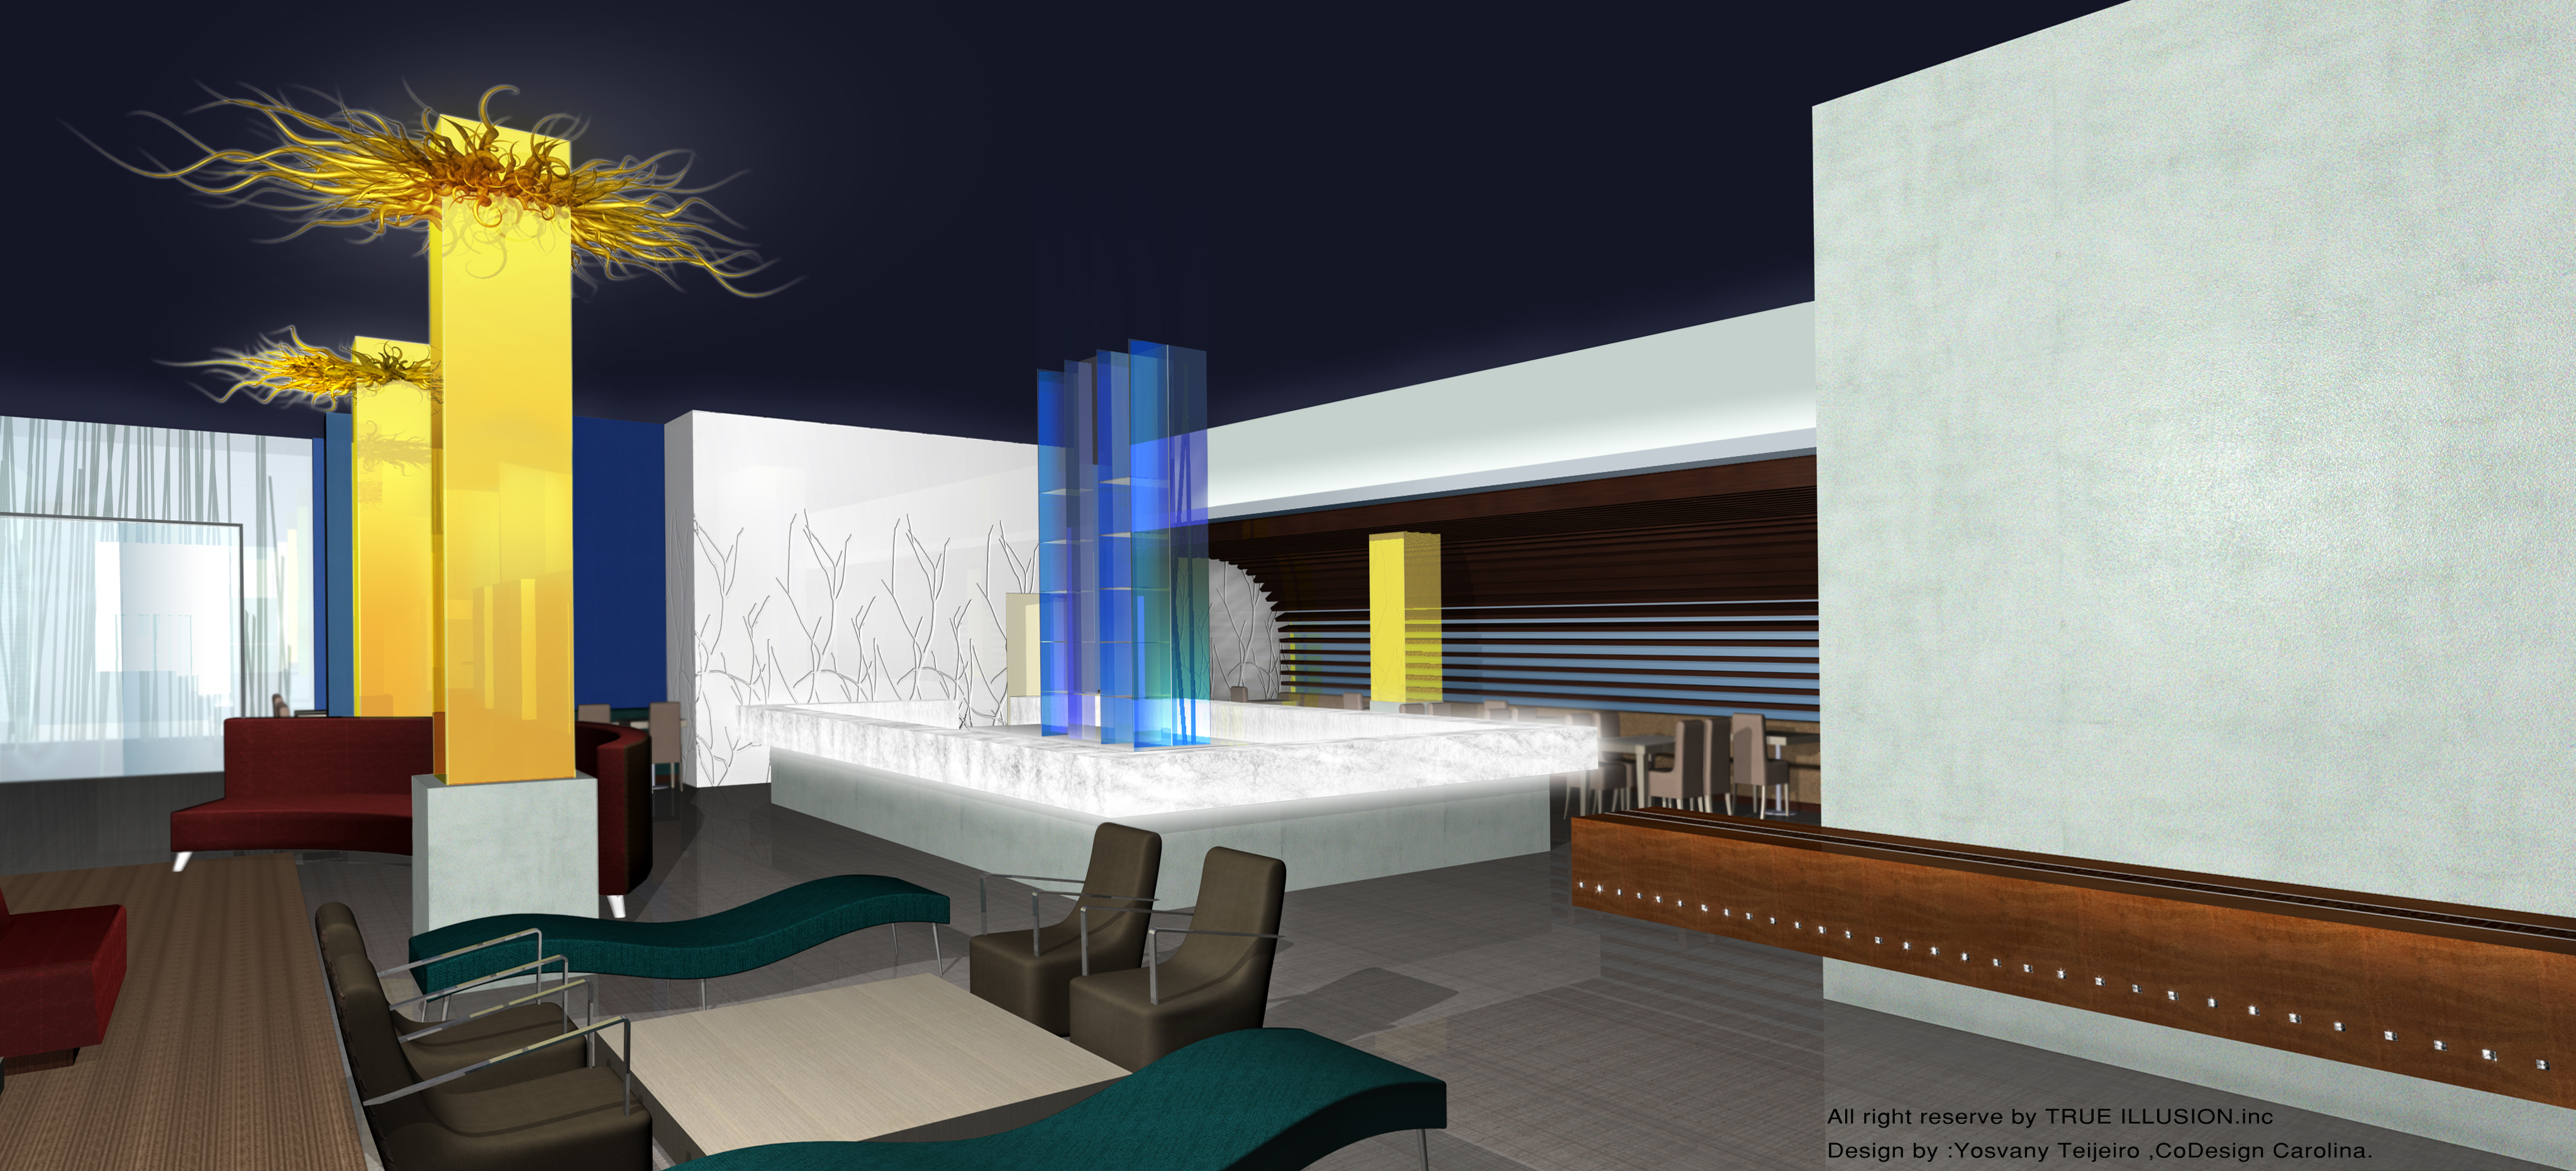 New orleans hotel interior decoration proposal 2007 for Design hotel new orleans